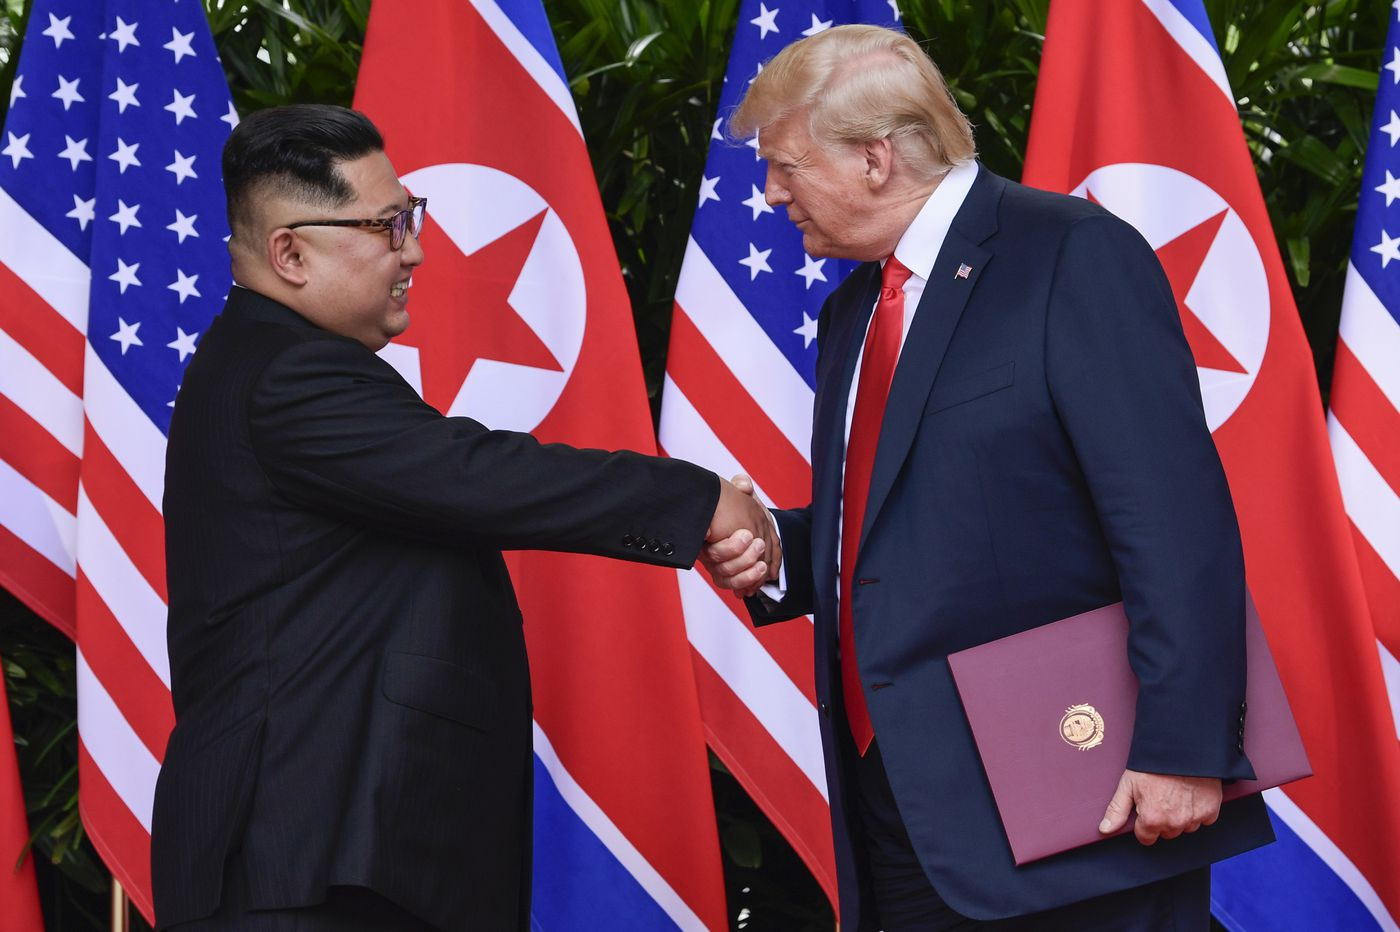 Brendan F. Boyle: Trump weakens America by overlooking North Korean human rights issues | Opinion